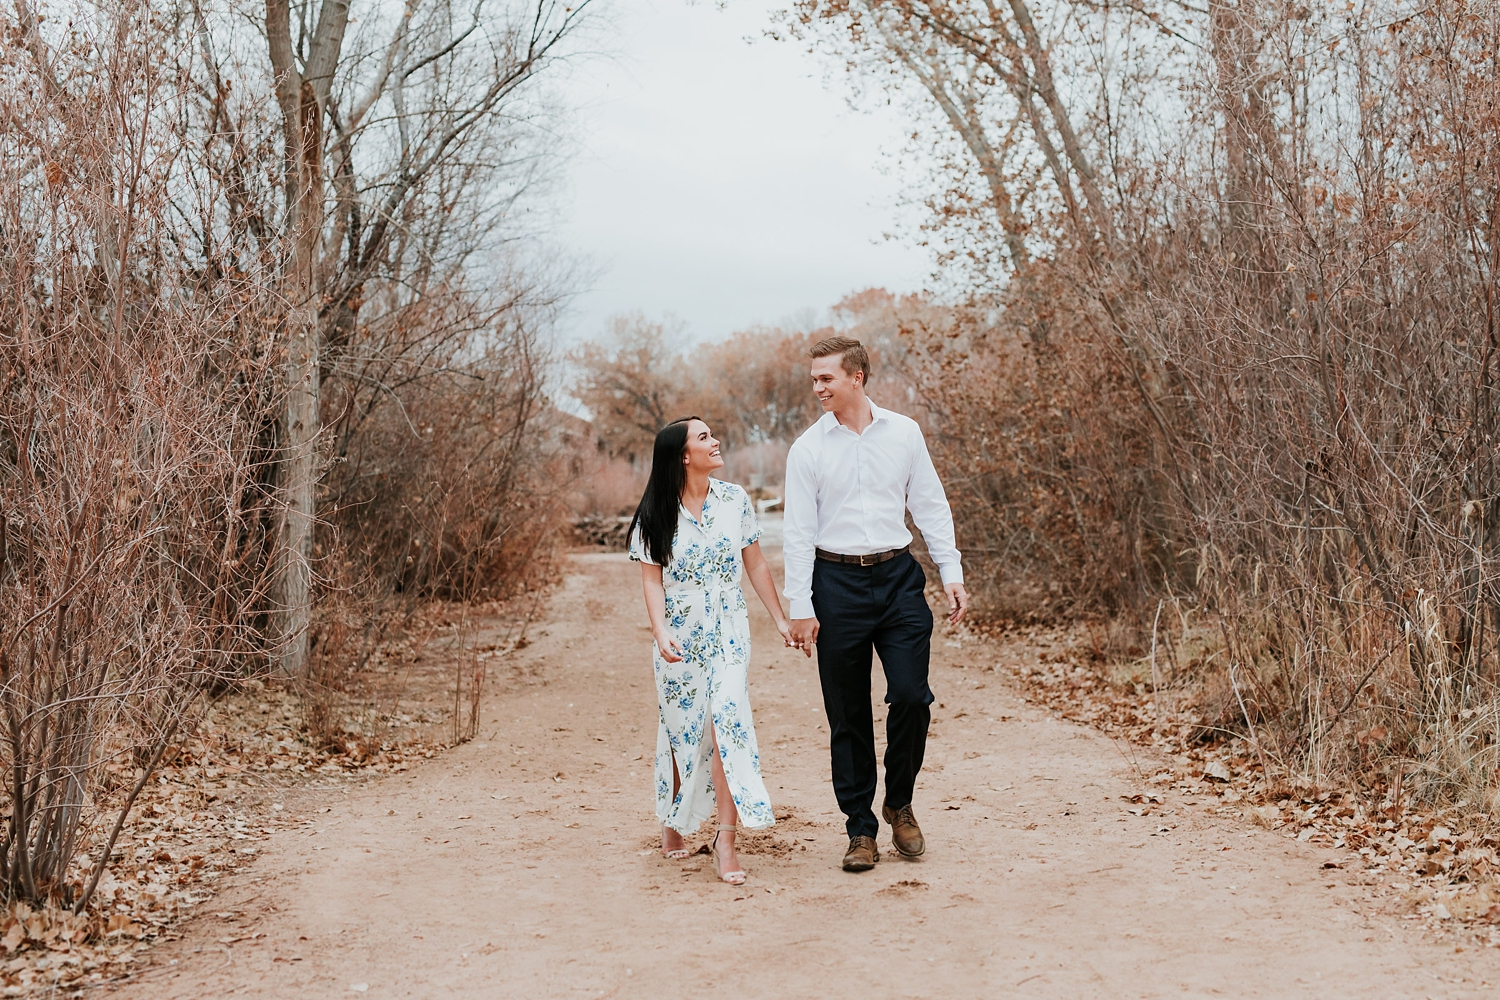 Alicia+lucia+photography+-+albuquerque+wedding+photographer+-+santa+fe+wedding+photography+-+new+mexico+wedding+photographer+-+new+mexico+engagement+-+la+posada+new+mexico+wedding_0014.jpg